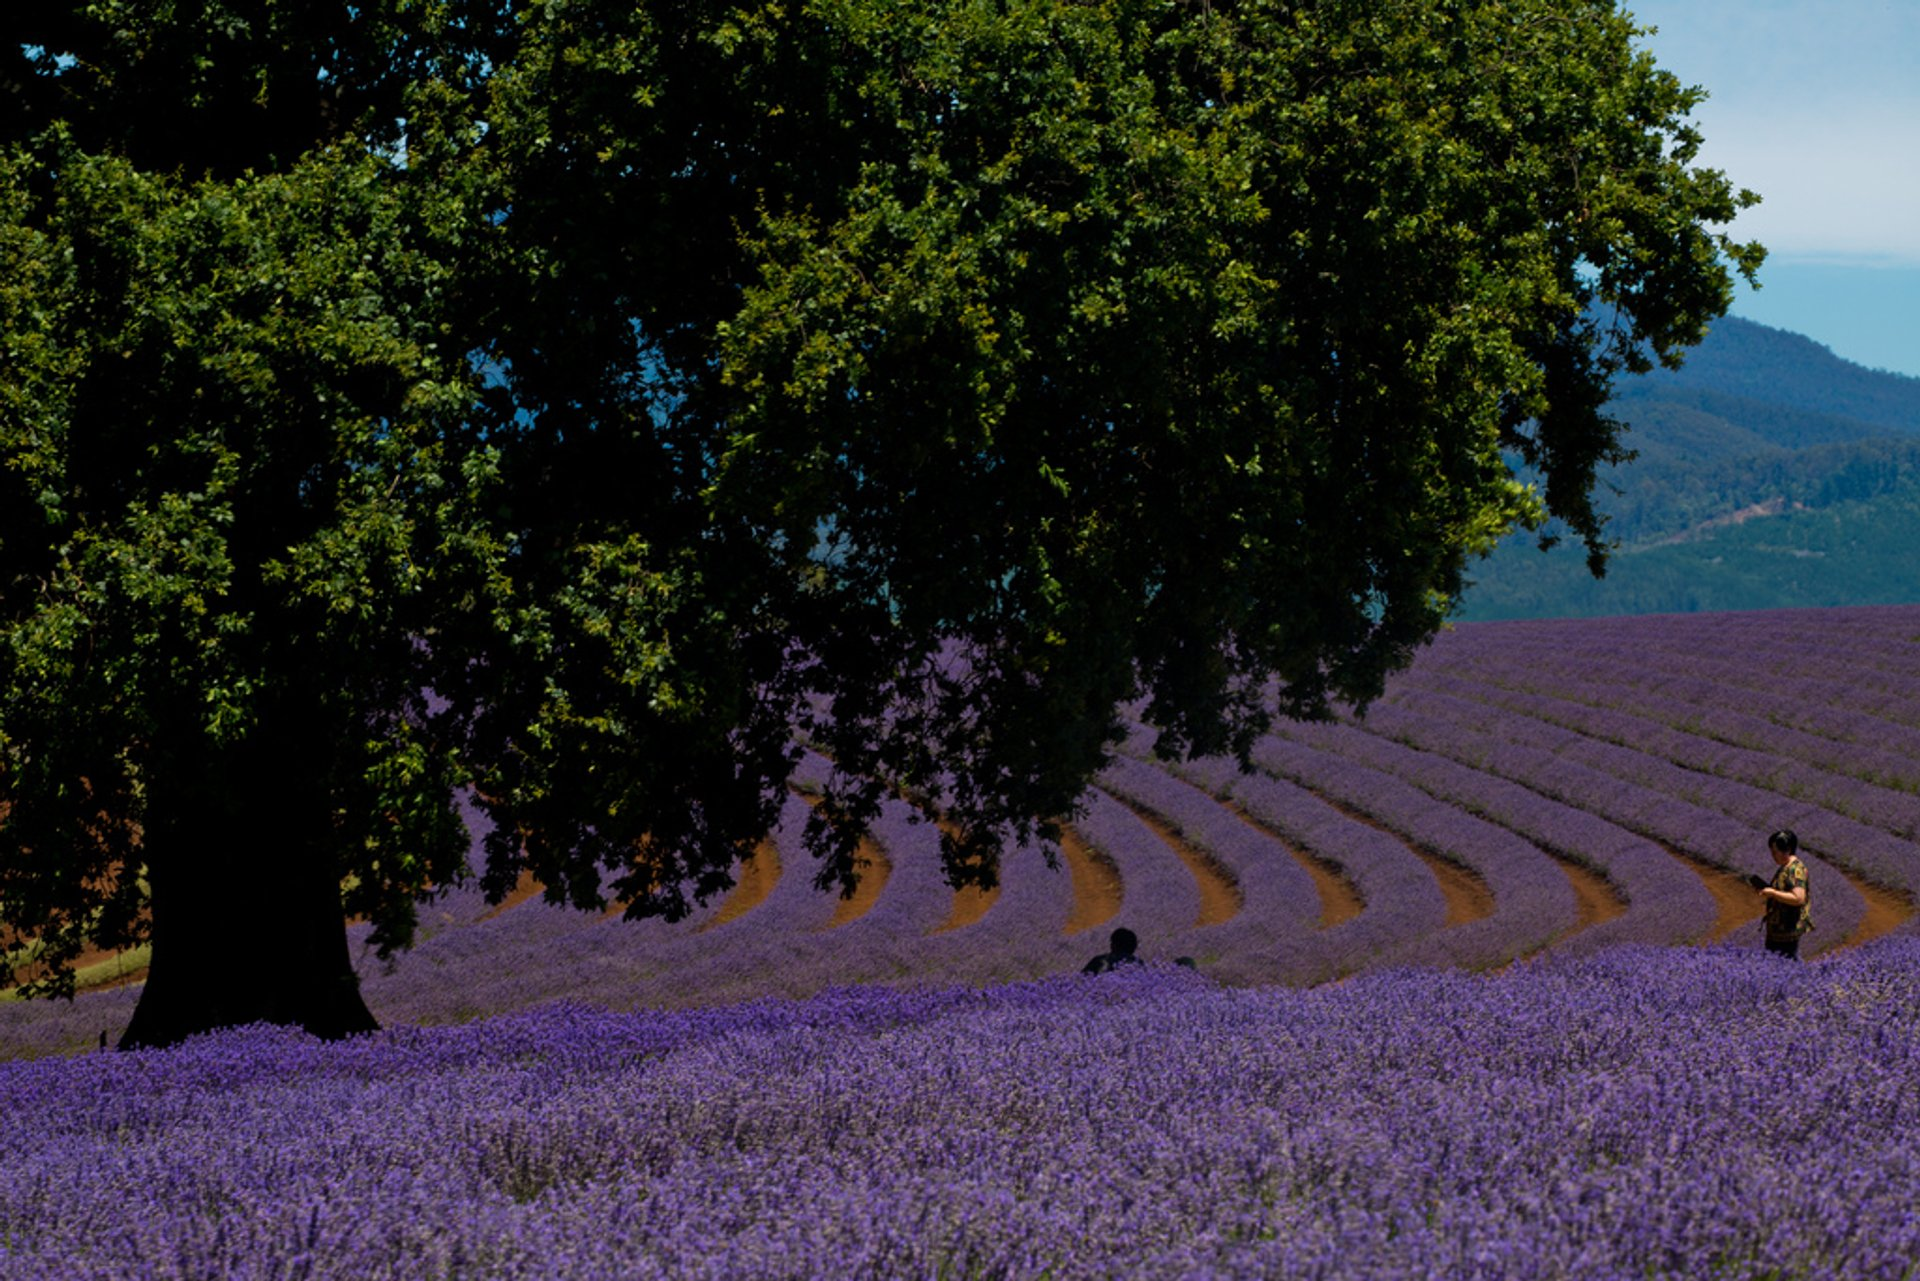 Bridestowe Lavender Farm in northeast Tasmania 2020